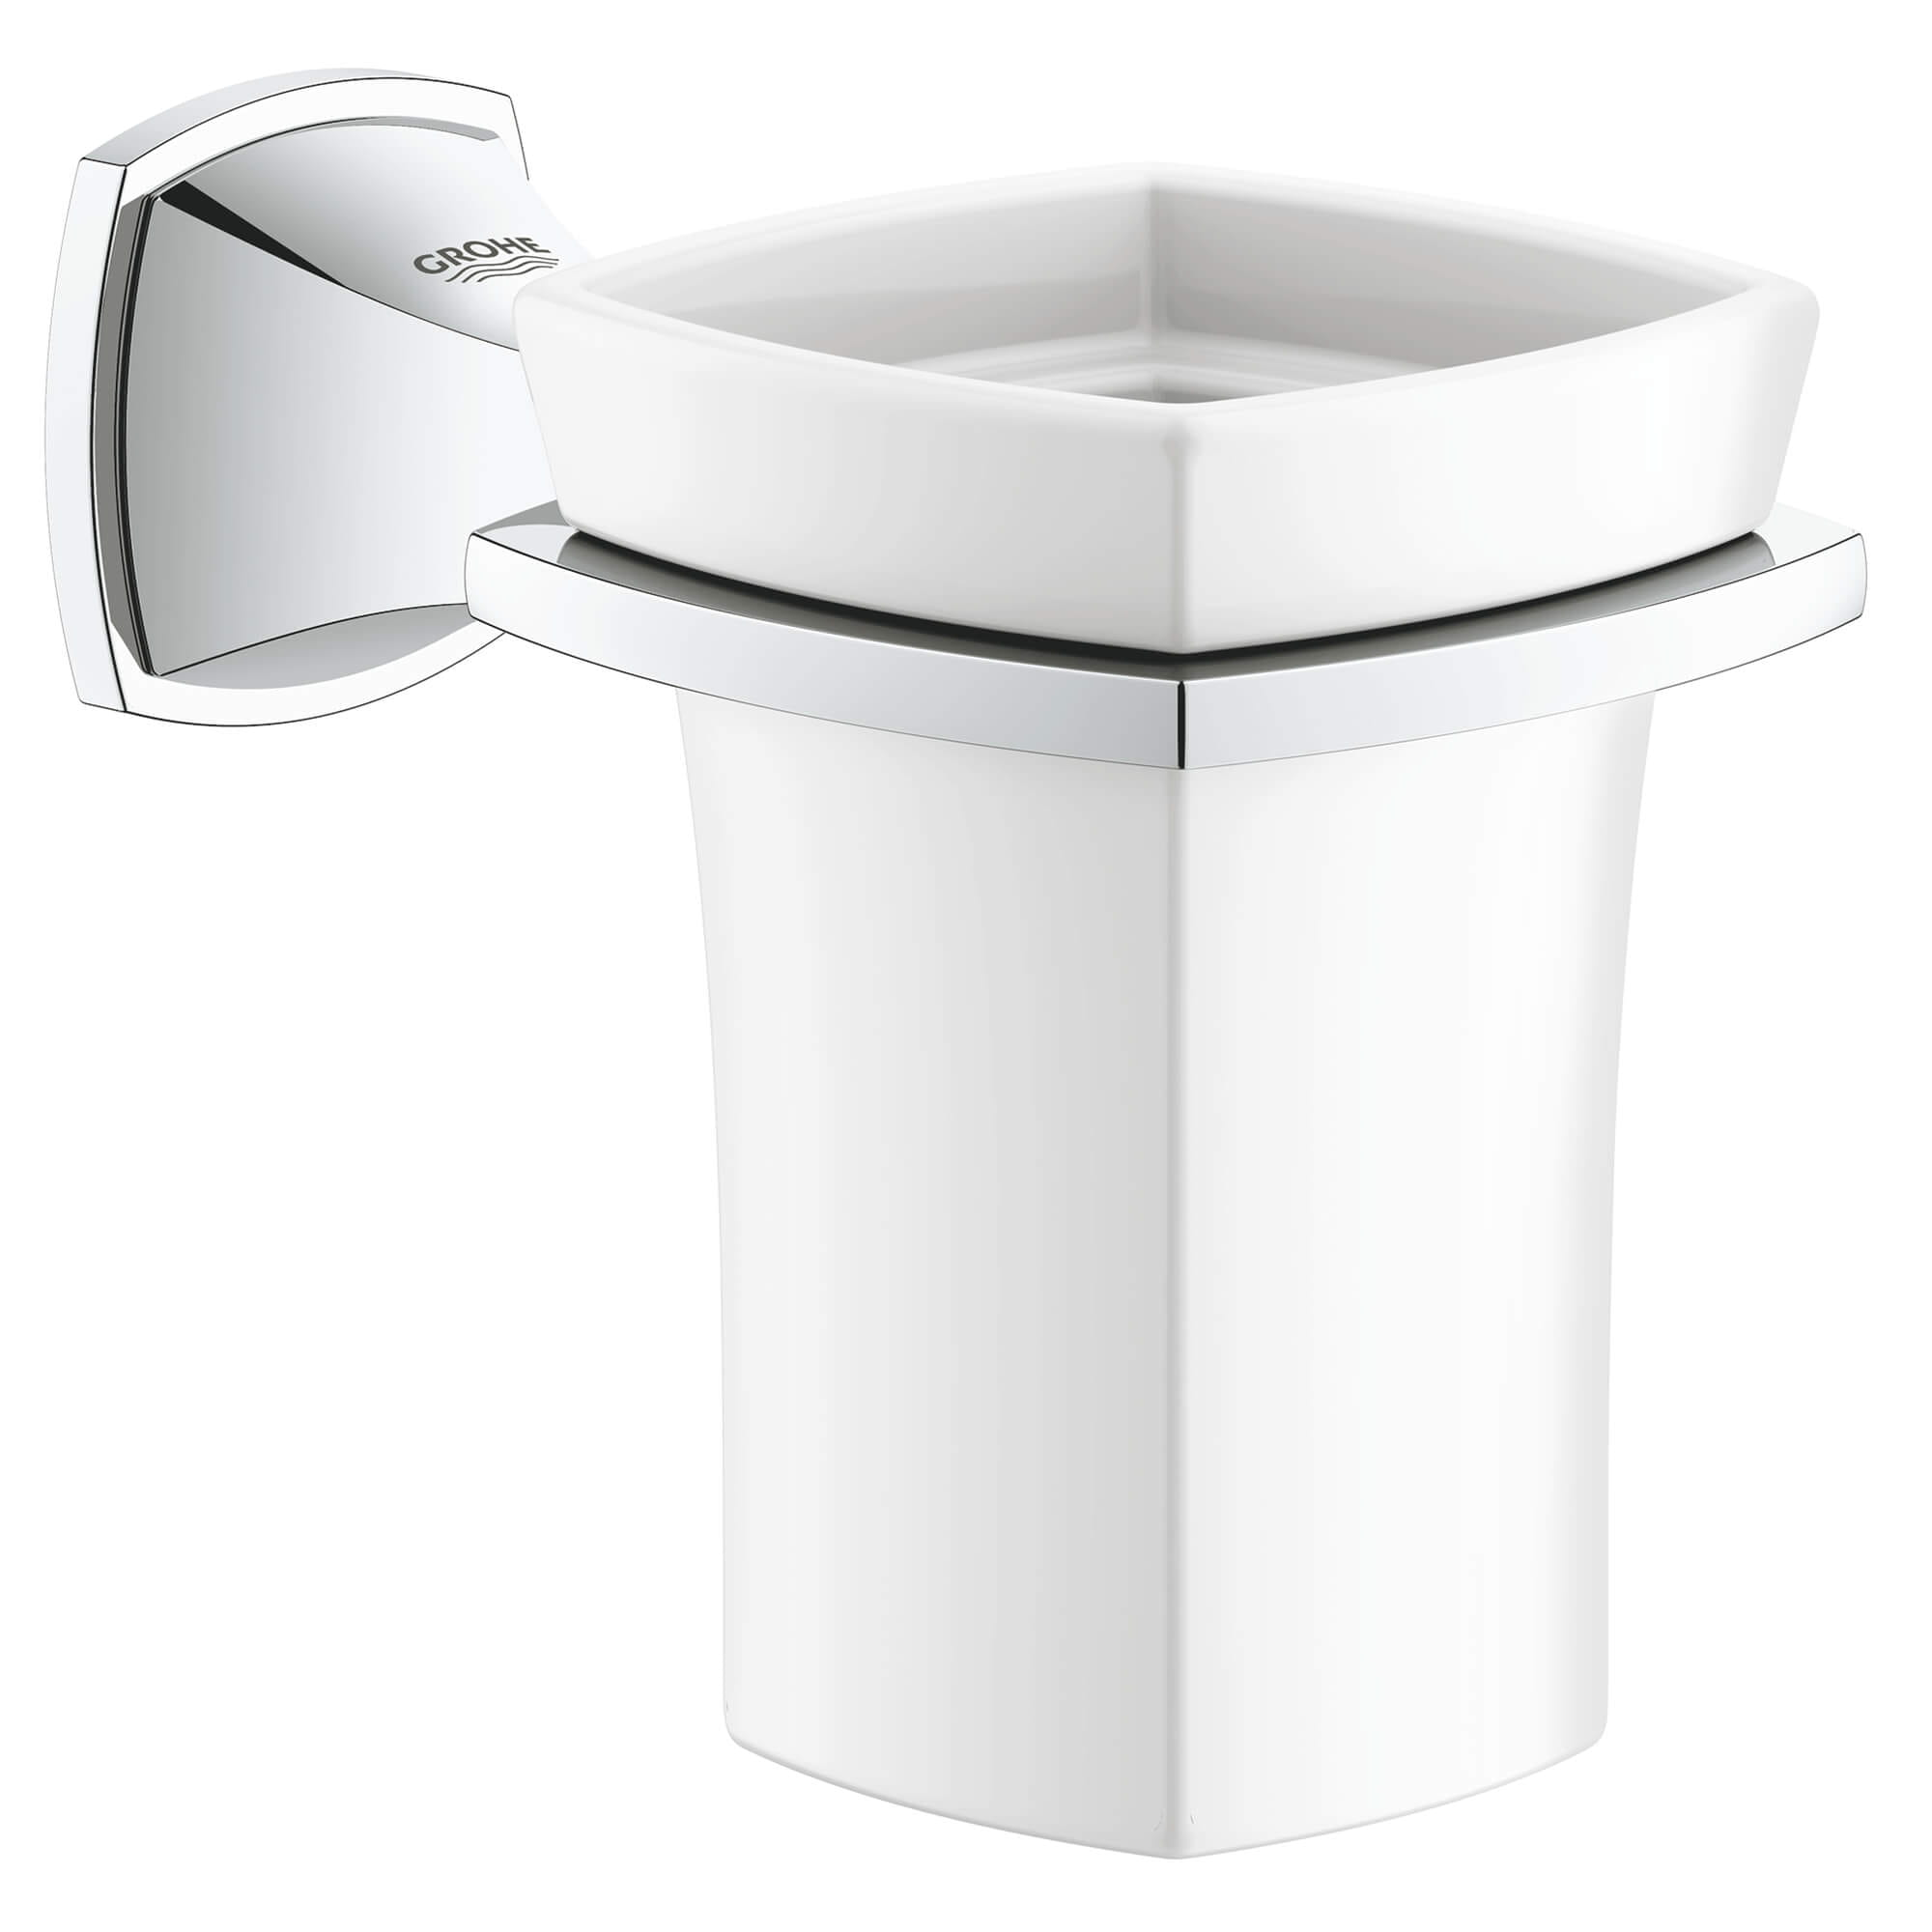 Ceramic Tumbler with Holder GROHE CHROME